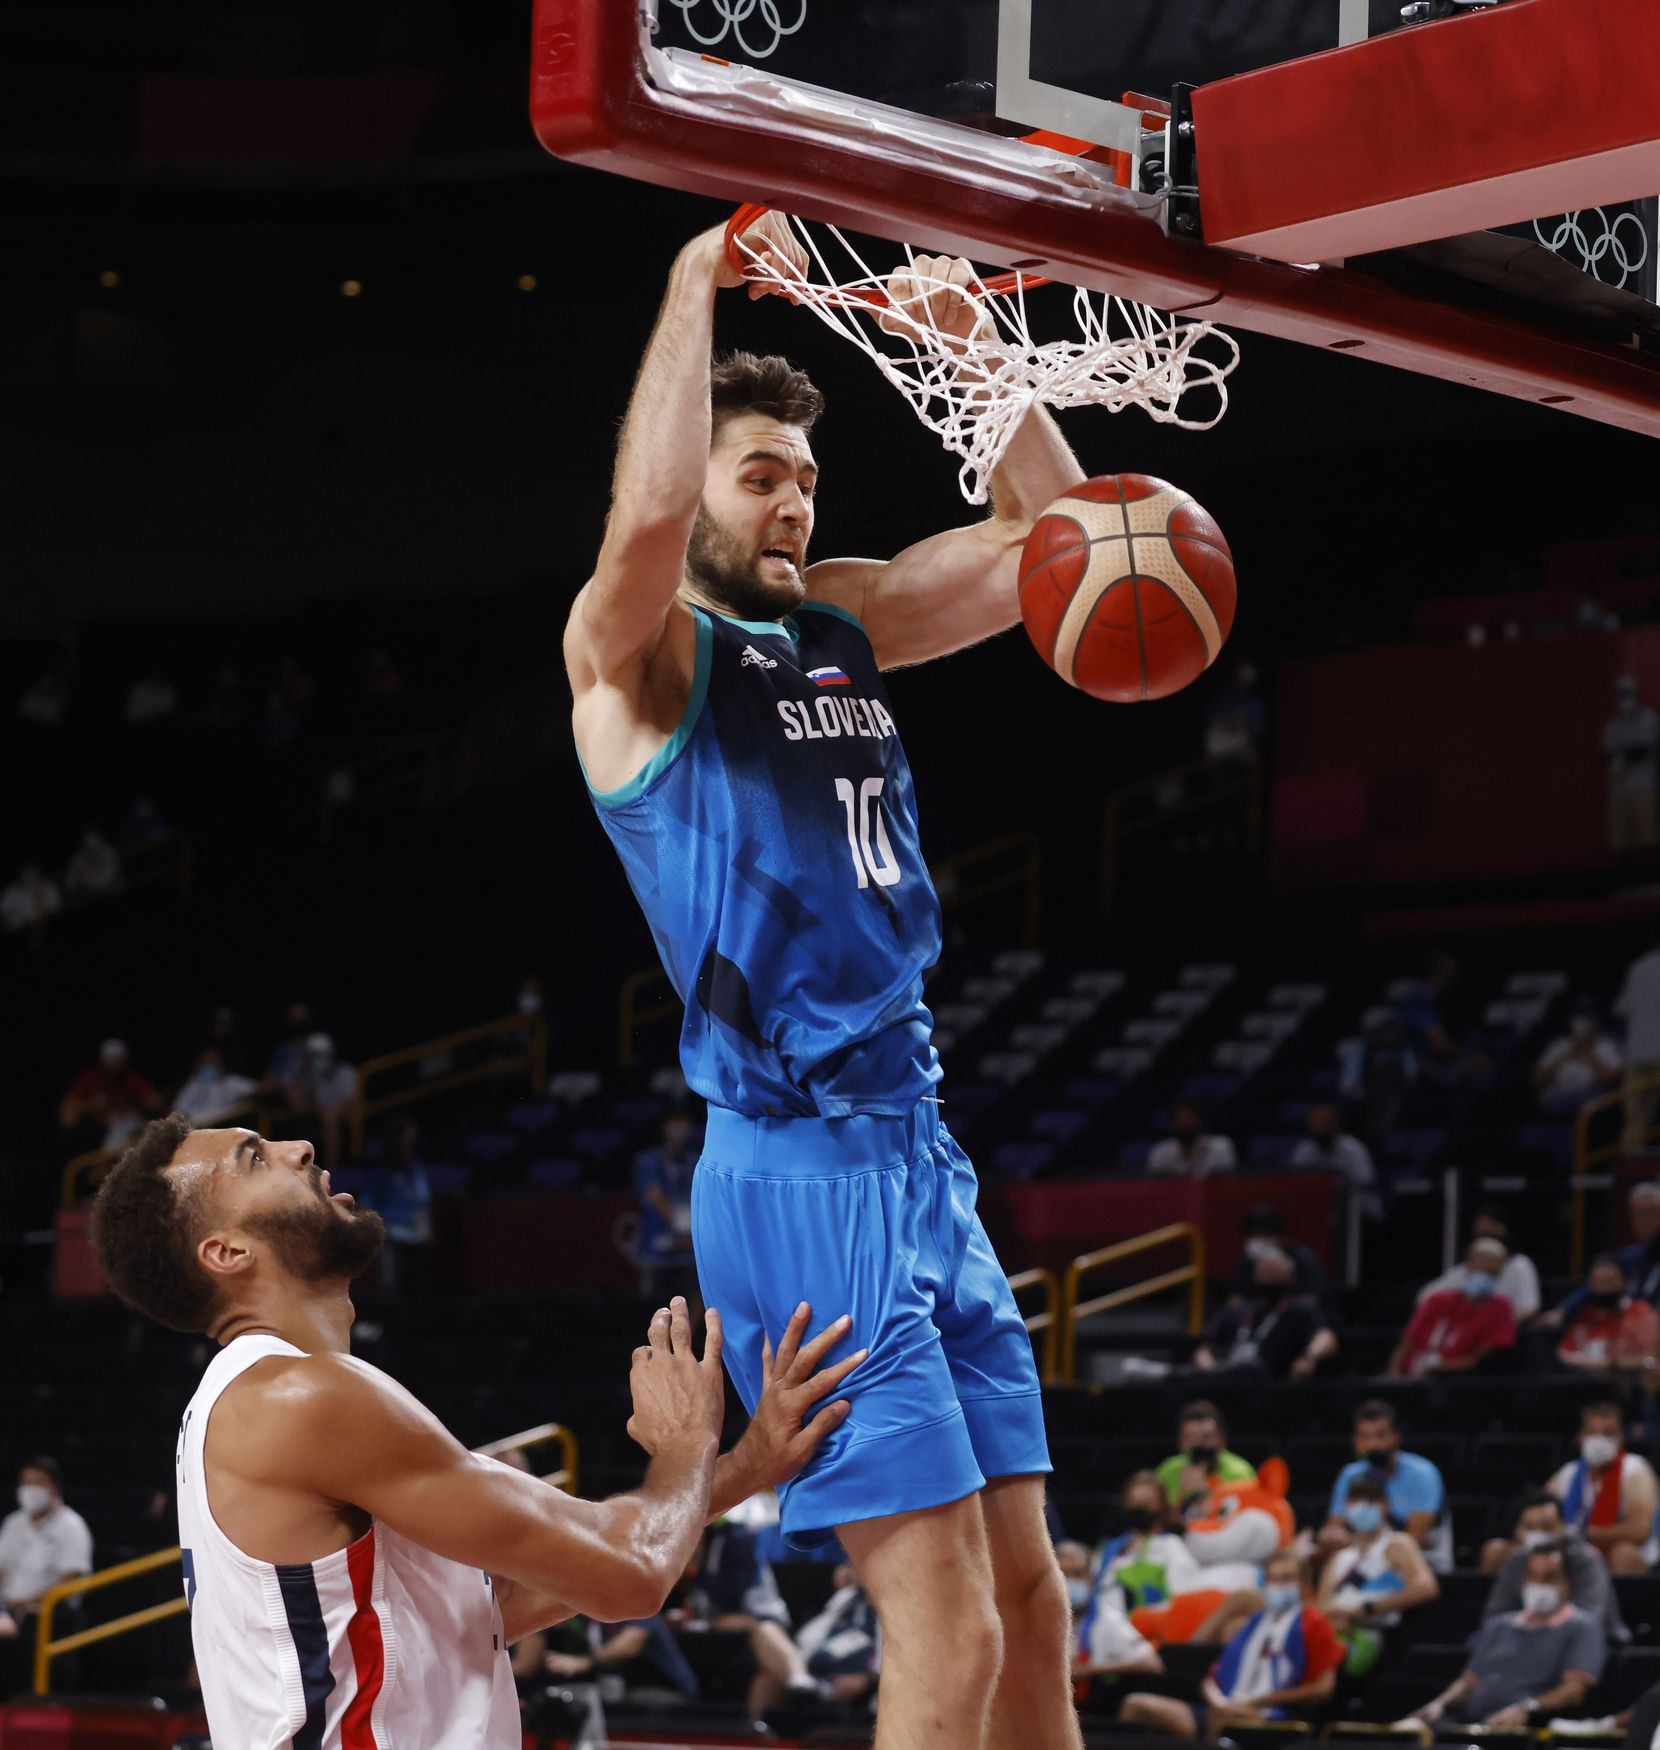 Slovenia's Mike Tobey (10) dunks the ball in front of France's Rudy Gobert (27) during the first half of a men's basketball semifinal at the postponed 2020 Tokyo Olympics at Saitama Super Arena, on Thursday, August 5, 2021, in Saitama, Japan. (Vernon Bryant/The Dallas Morning News)